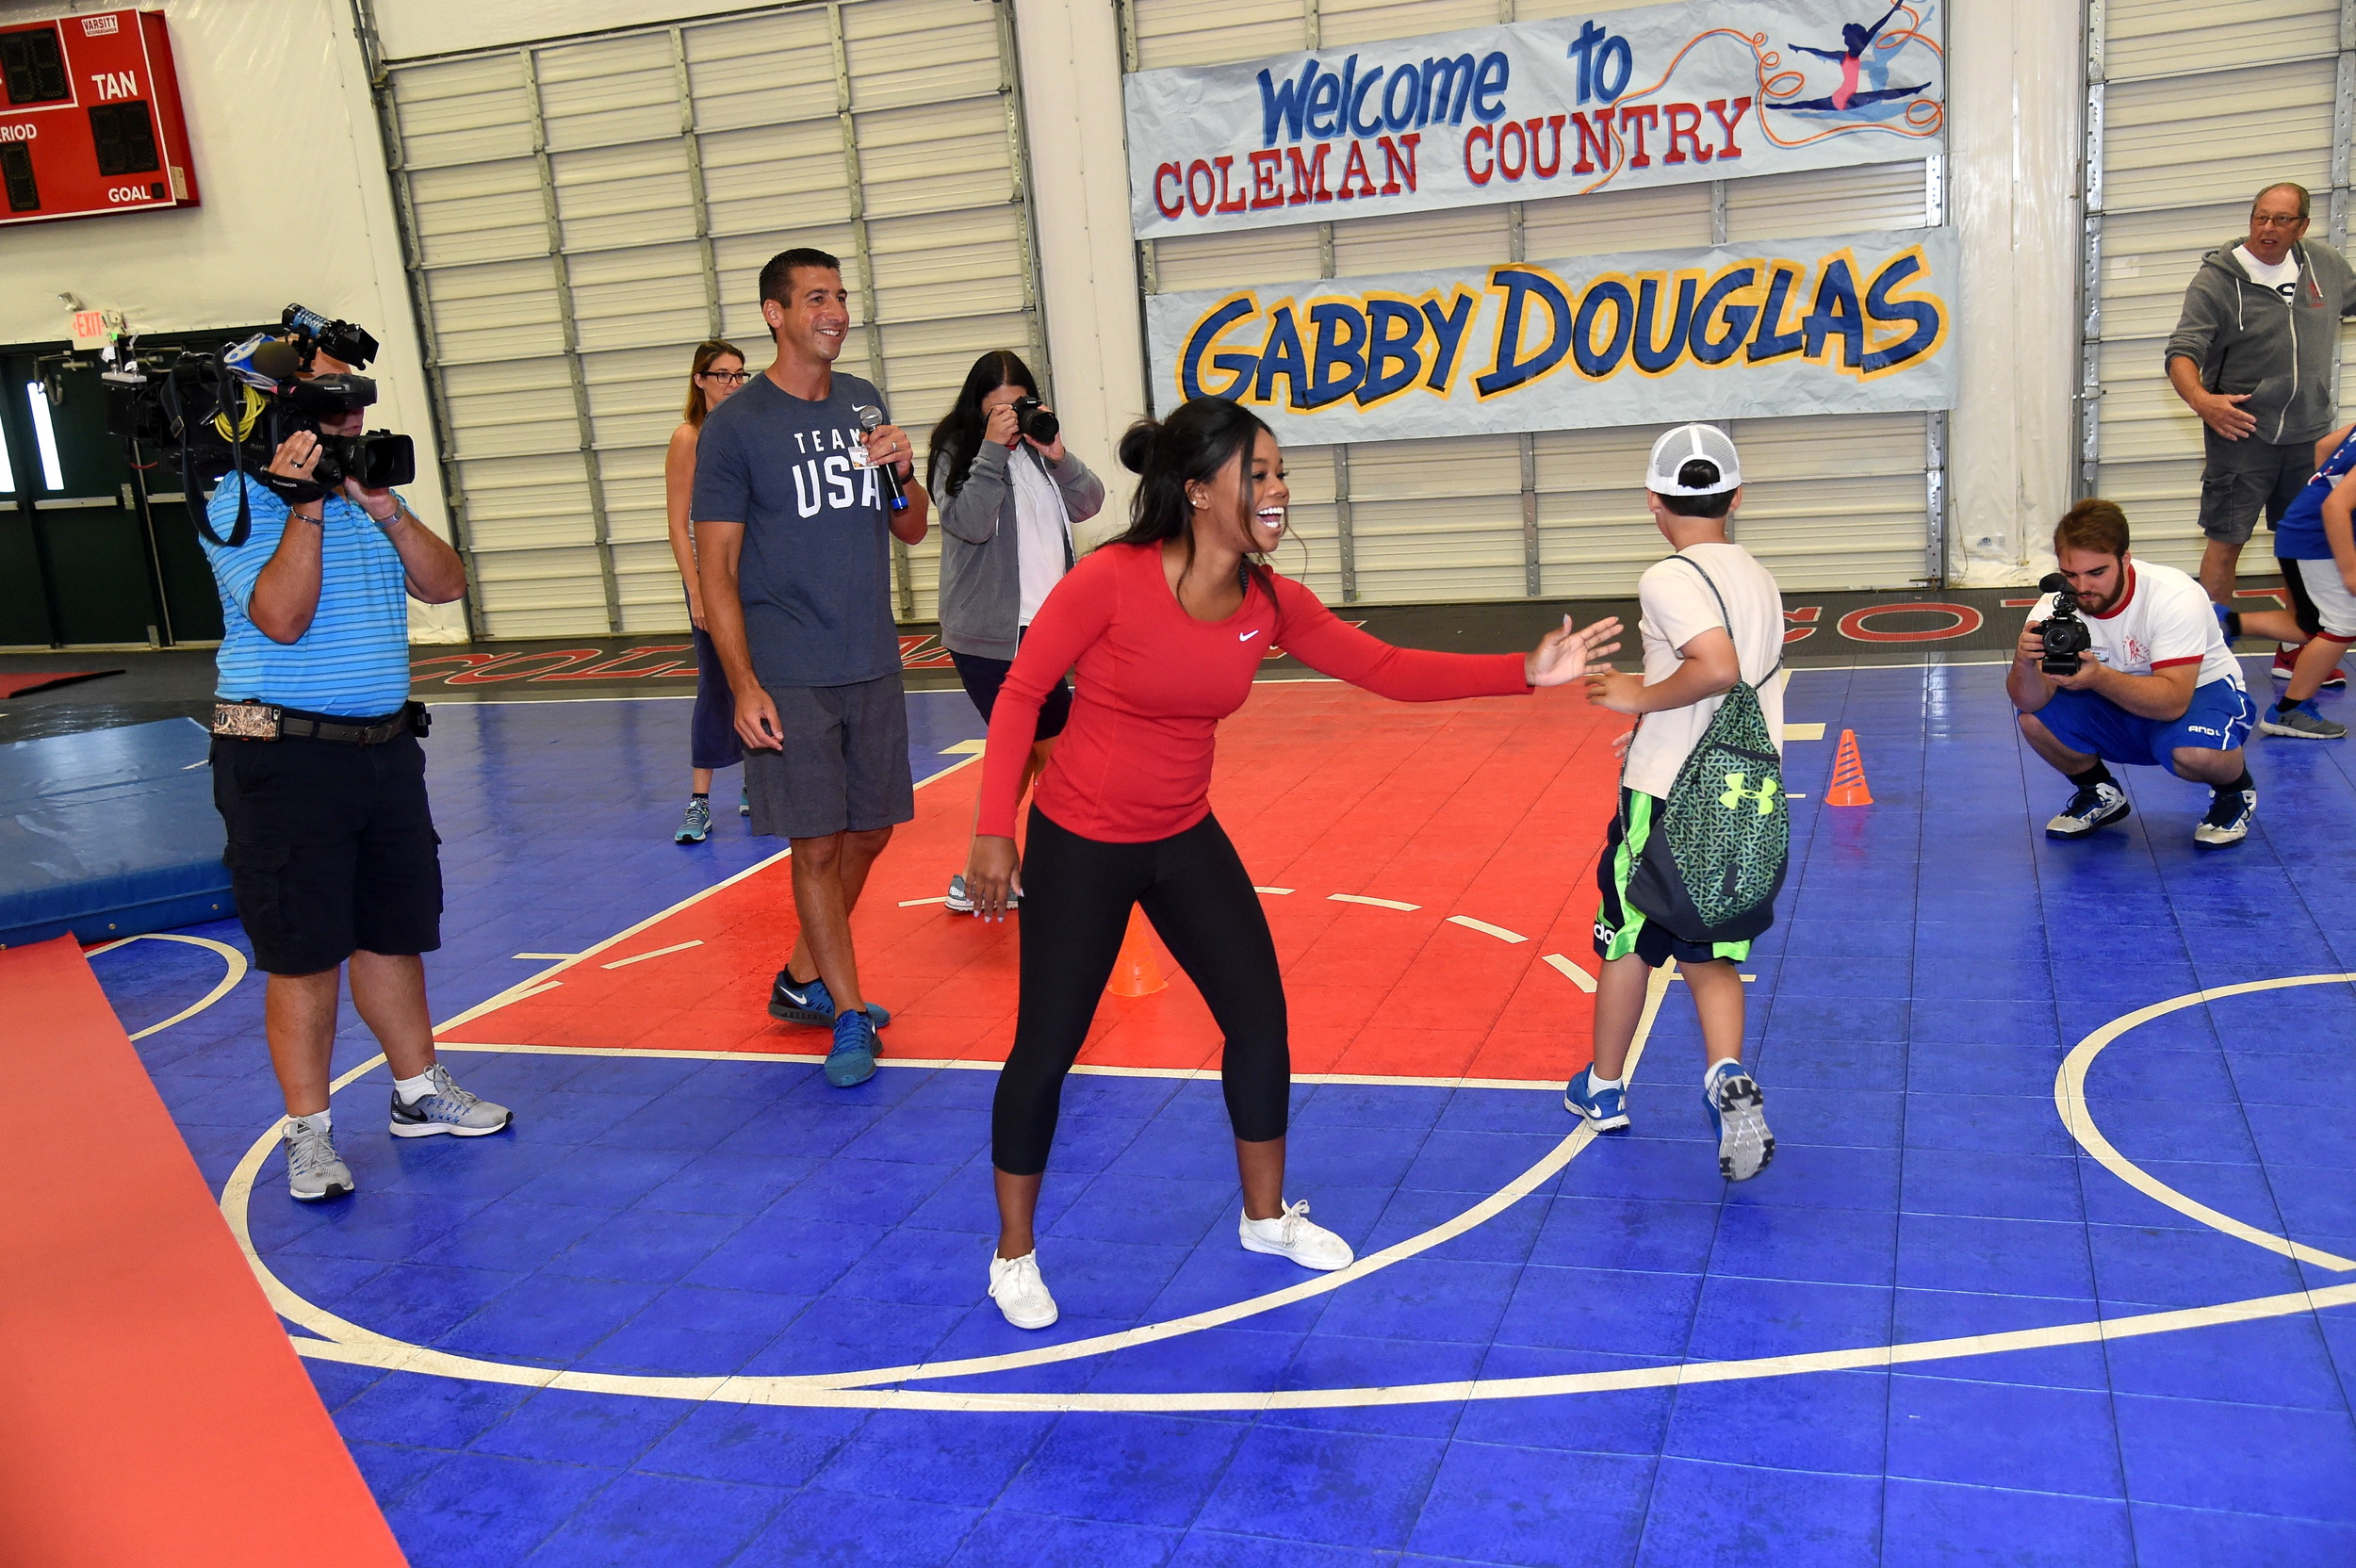 Campers bounded up to give Gabby Douglas high-fives.